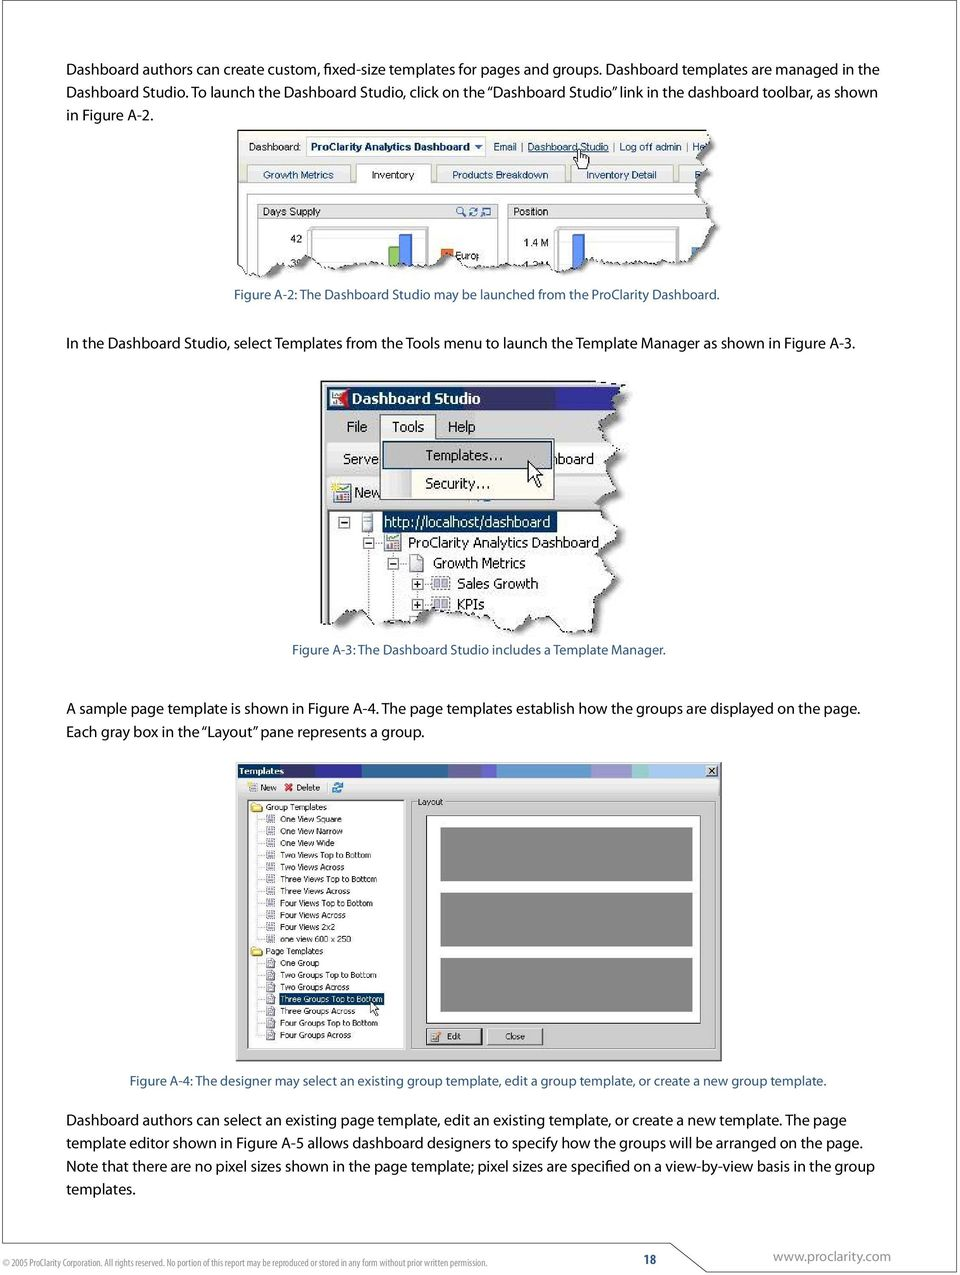 In the Dashboard Studio, select Templates from the Tools menu to launch the Template Manager as shown in Figure A-3. Figure A-3: The Dashboard Studio includes a Template Manager.